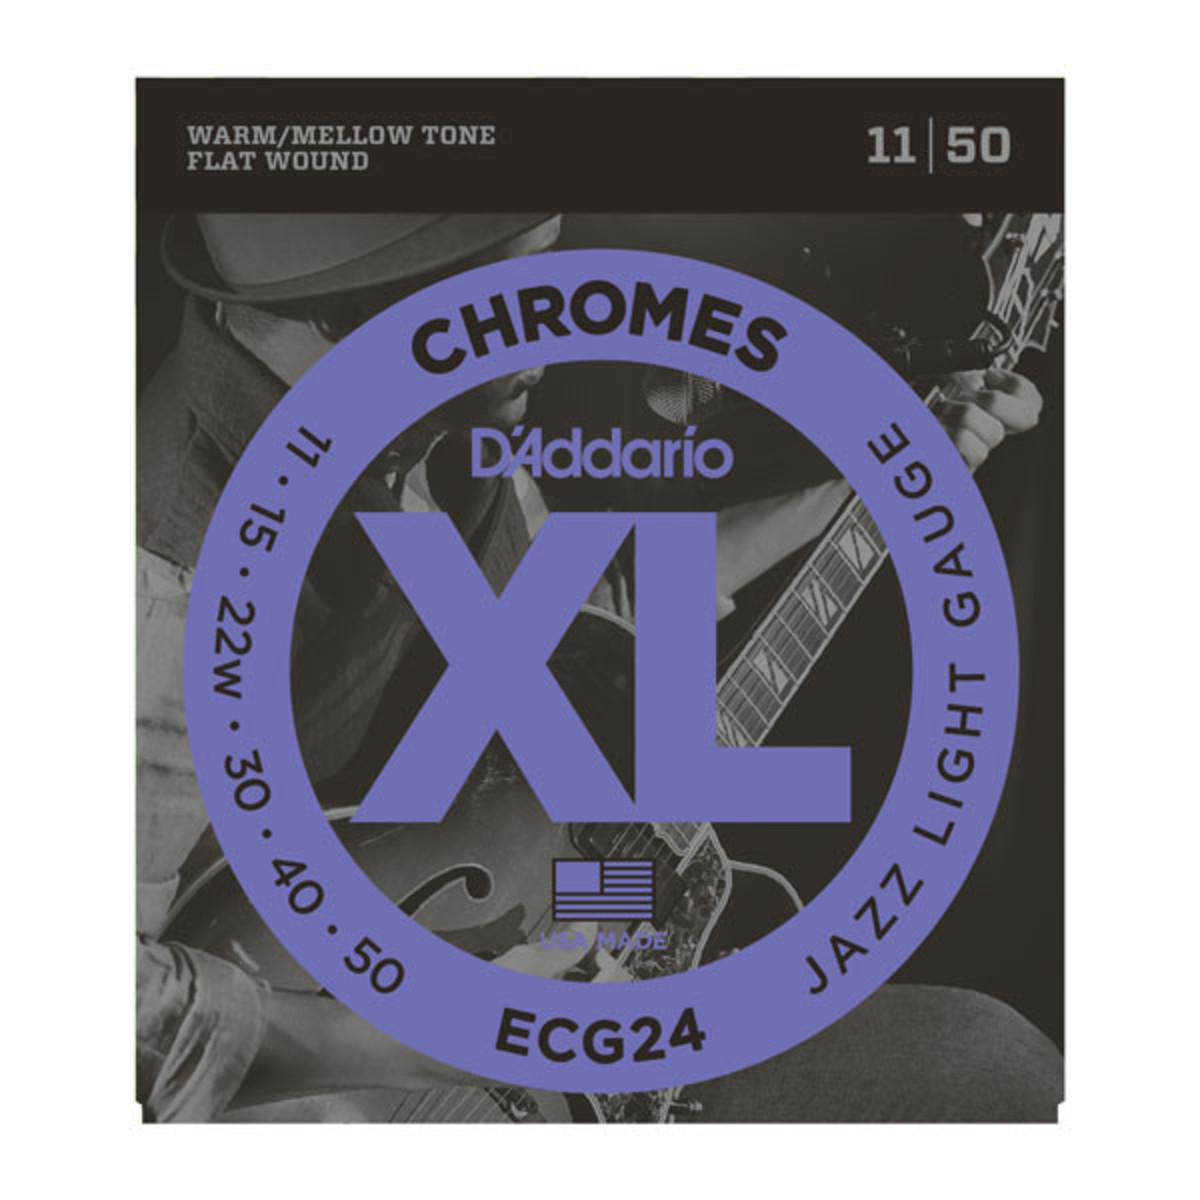 Image of DAddario ECG24 XL Flatwound Chromes Jazz Light 11-50